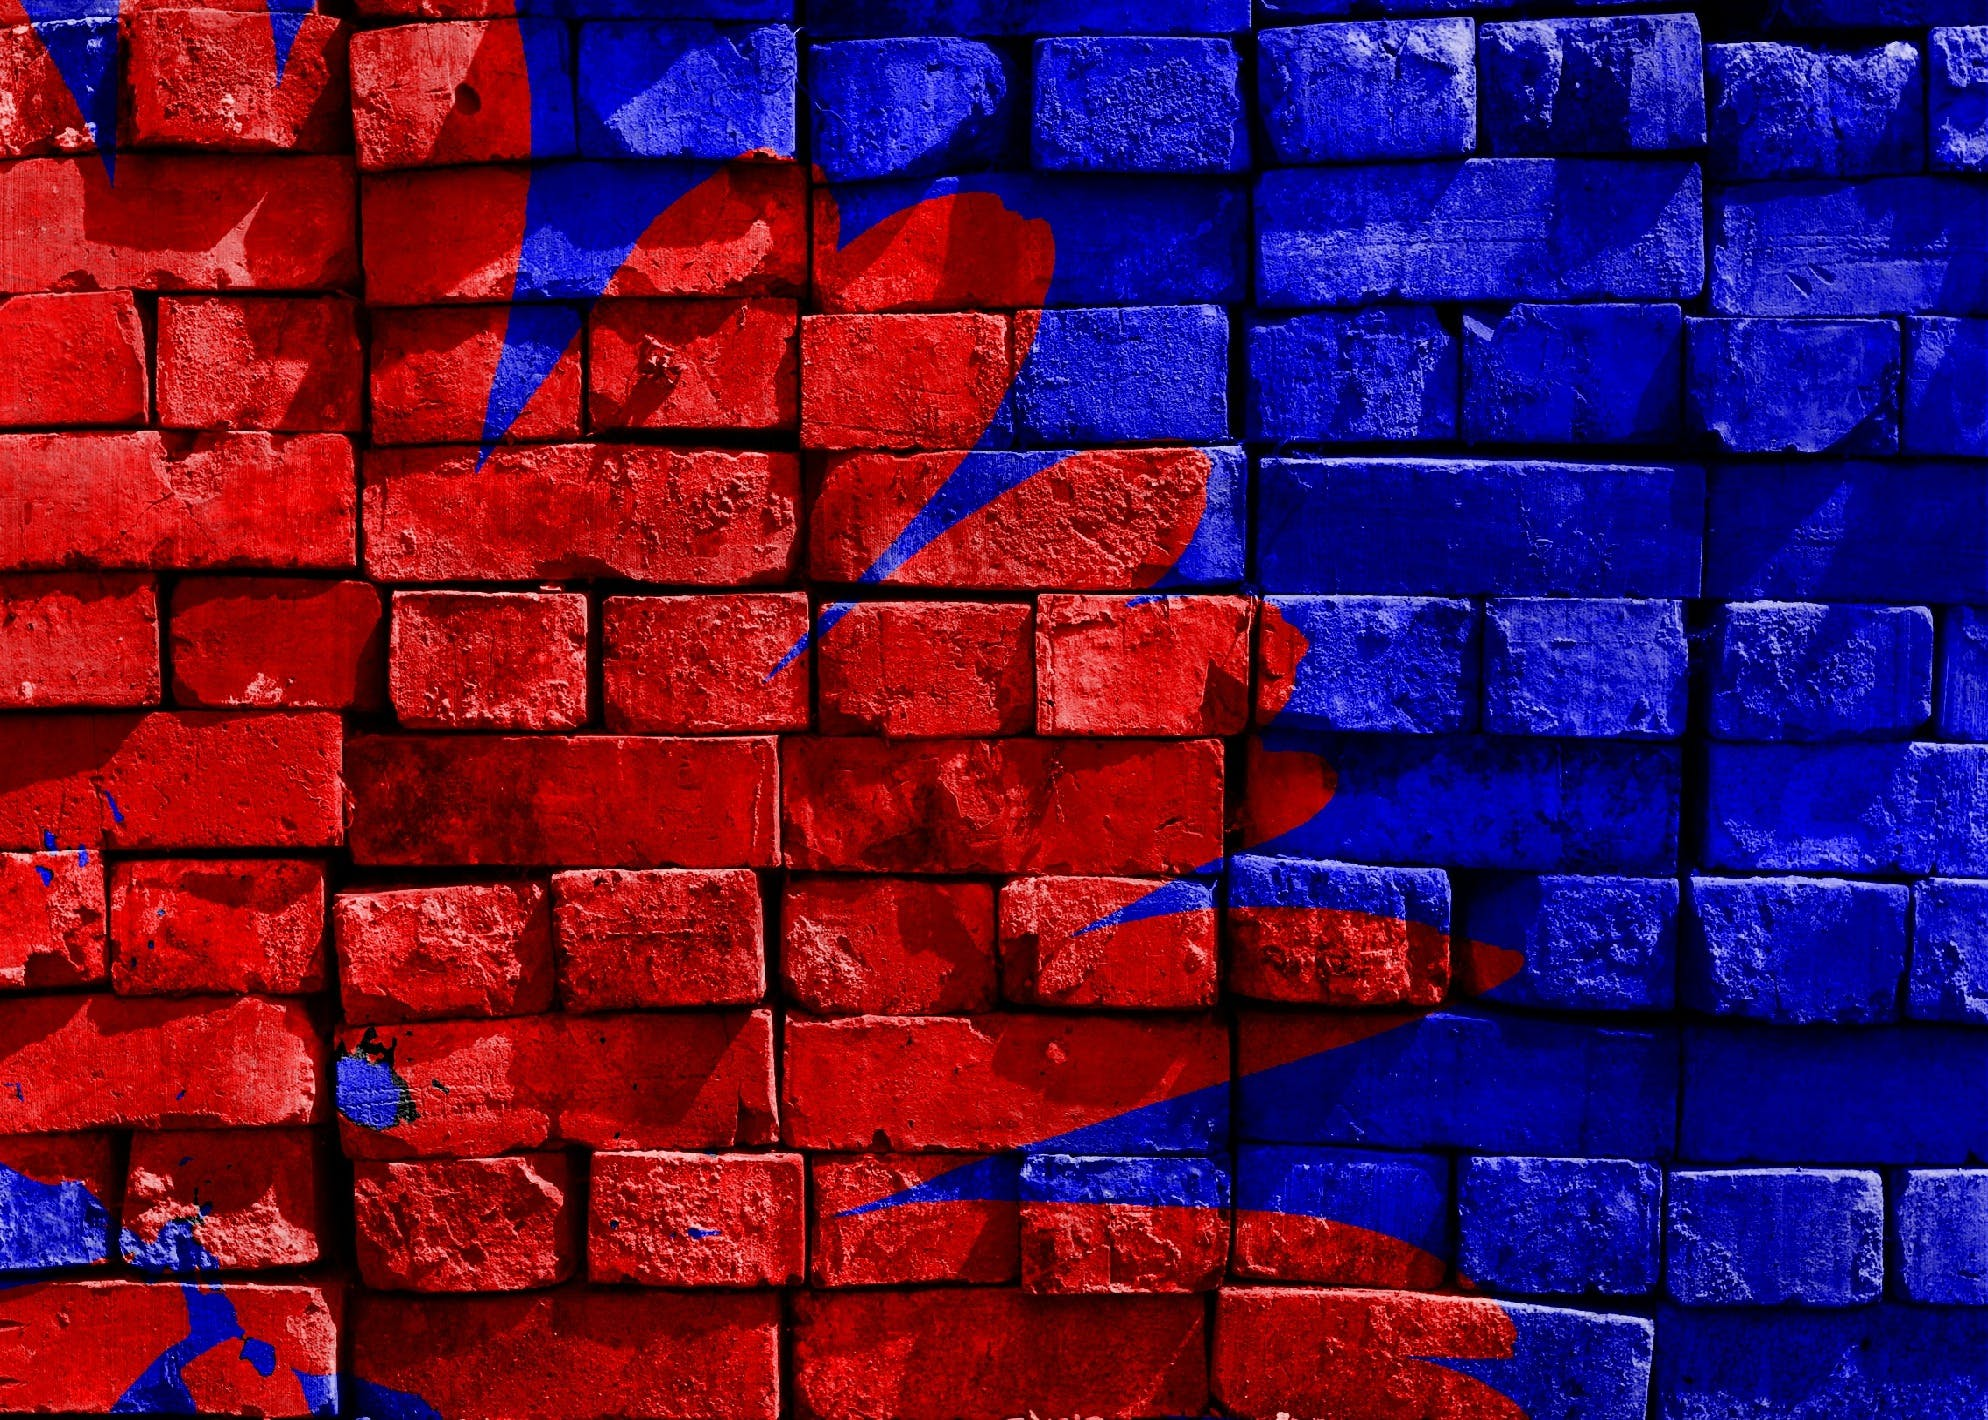 Blue and Red Brick Filled